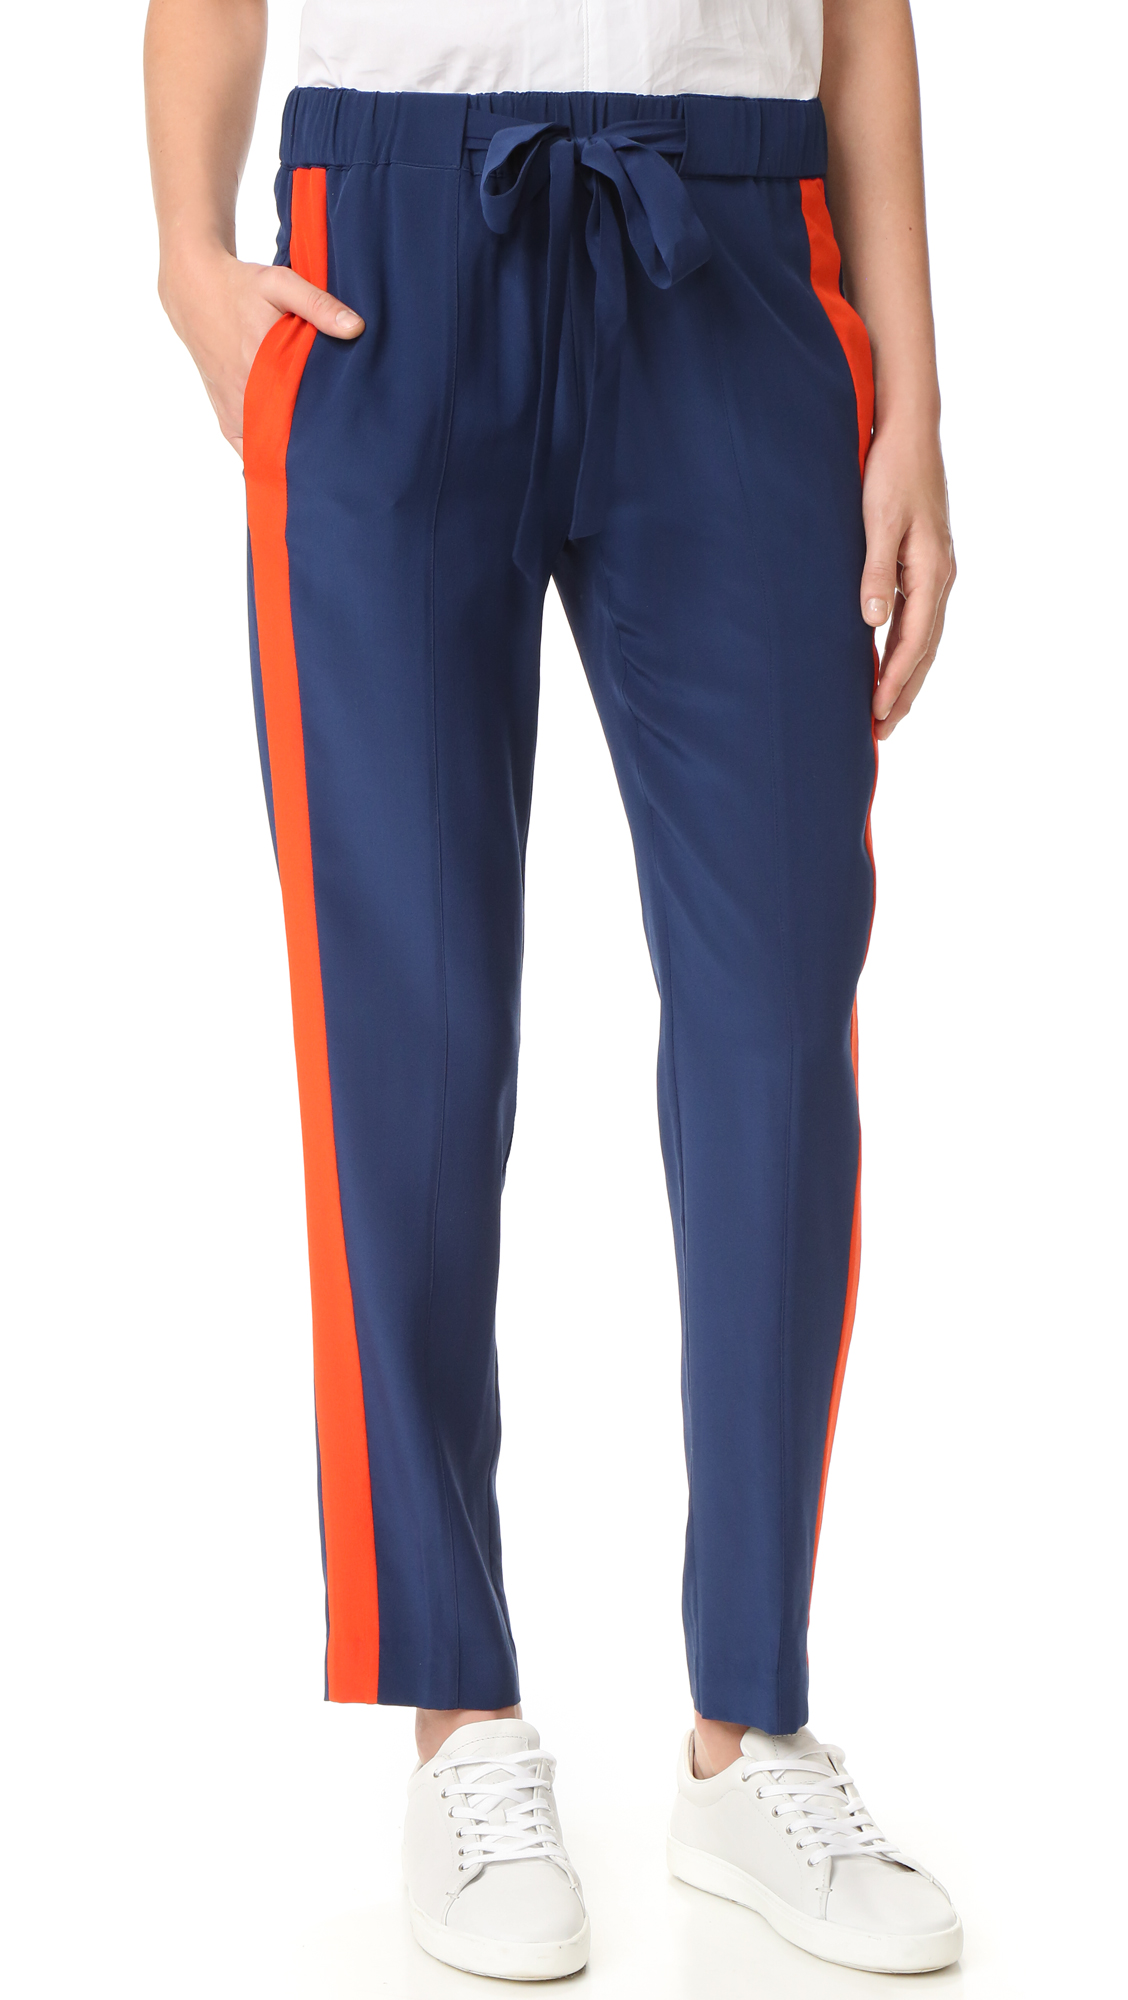 Bright tuxedo stripes add a bold pop of color to these relaxed silk Tory Burch track pants. Covered elastic waist with drawstring tie. On seam hip pockets. Fabric: Plain weave. 100% silk. Dry clean. Imported, China. Measurements